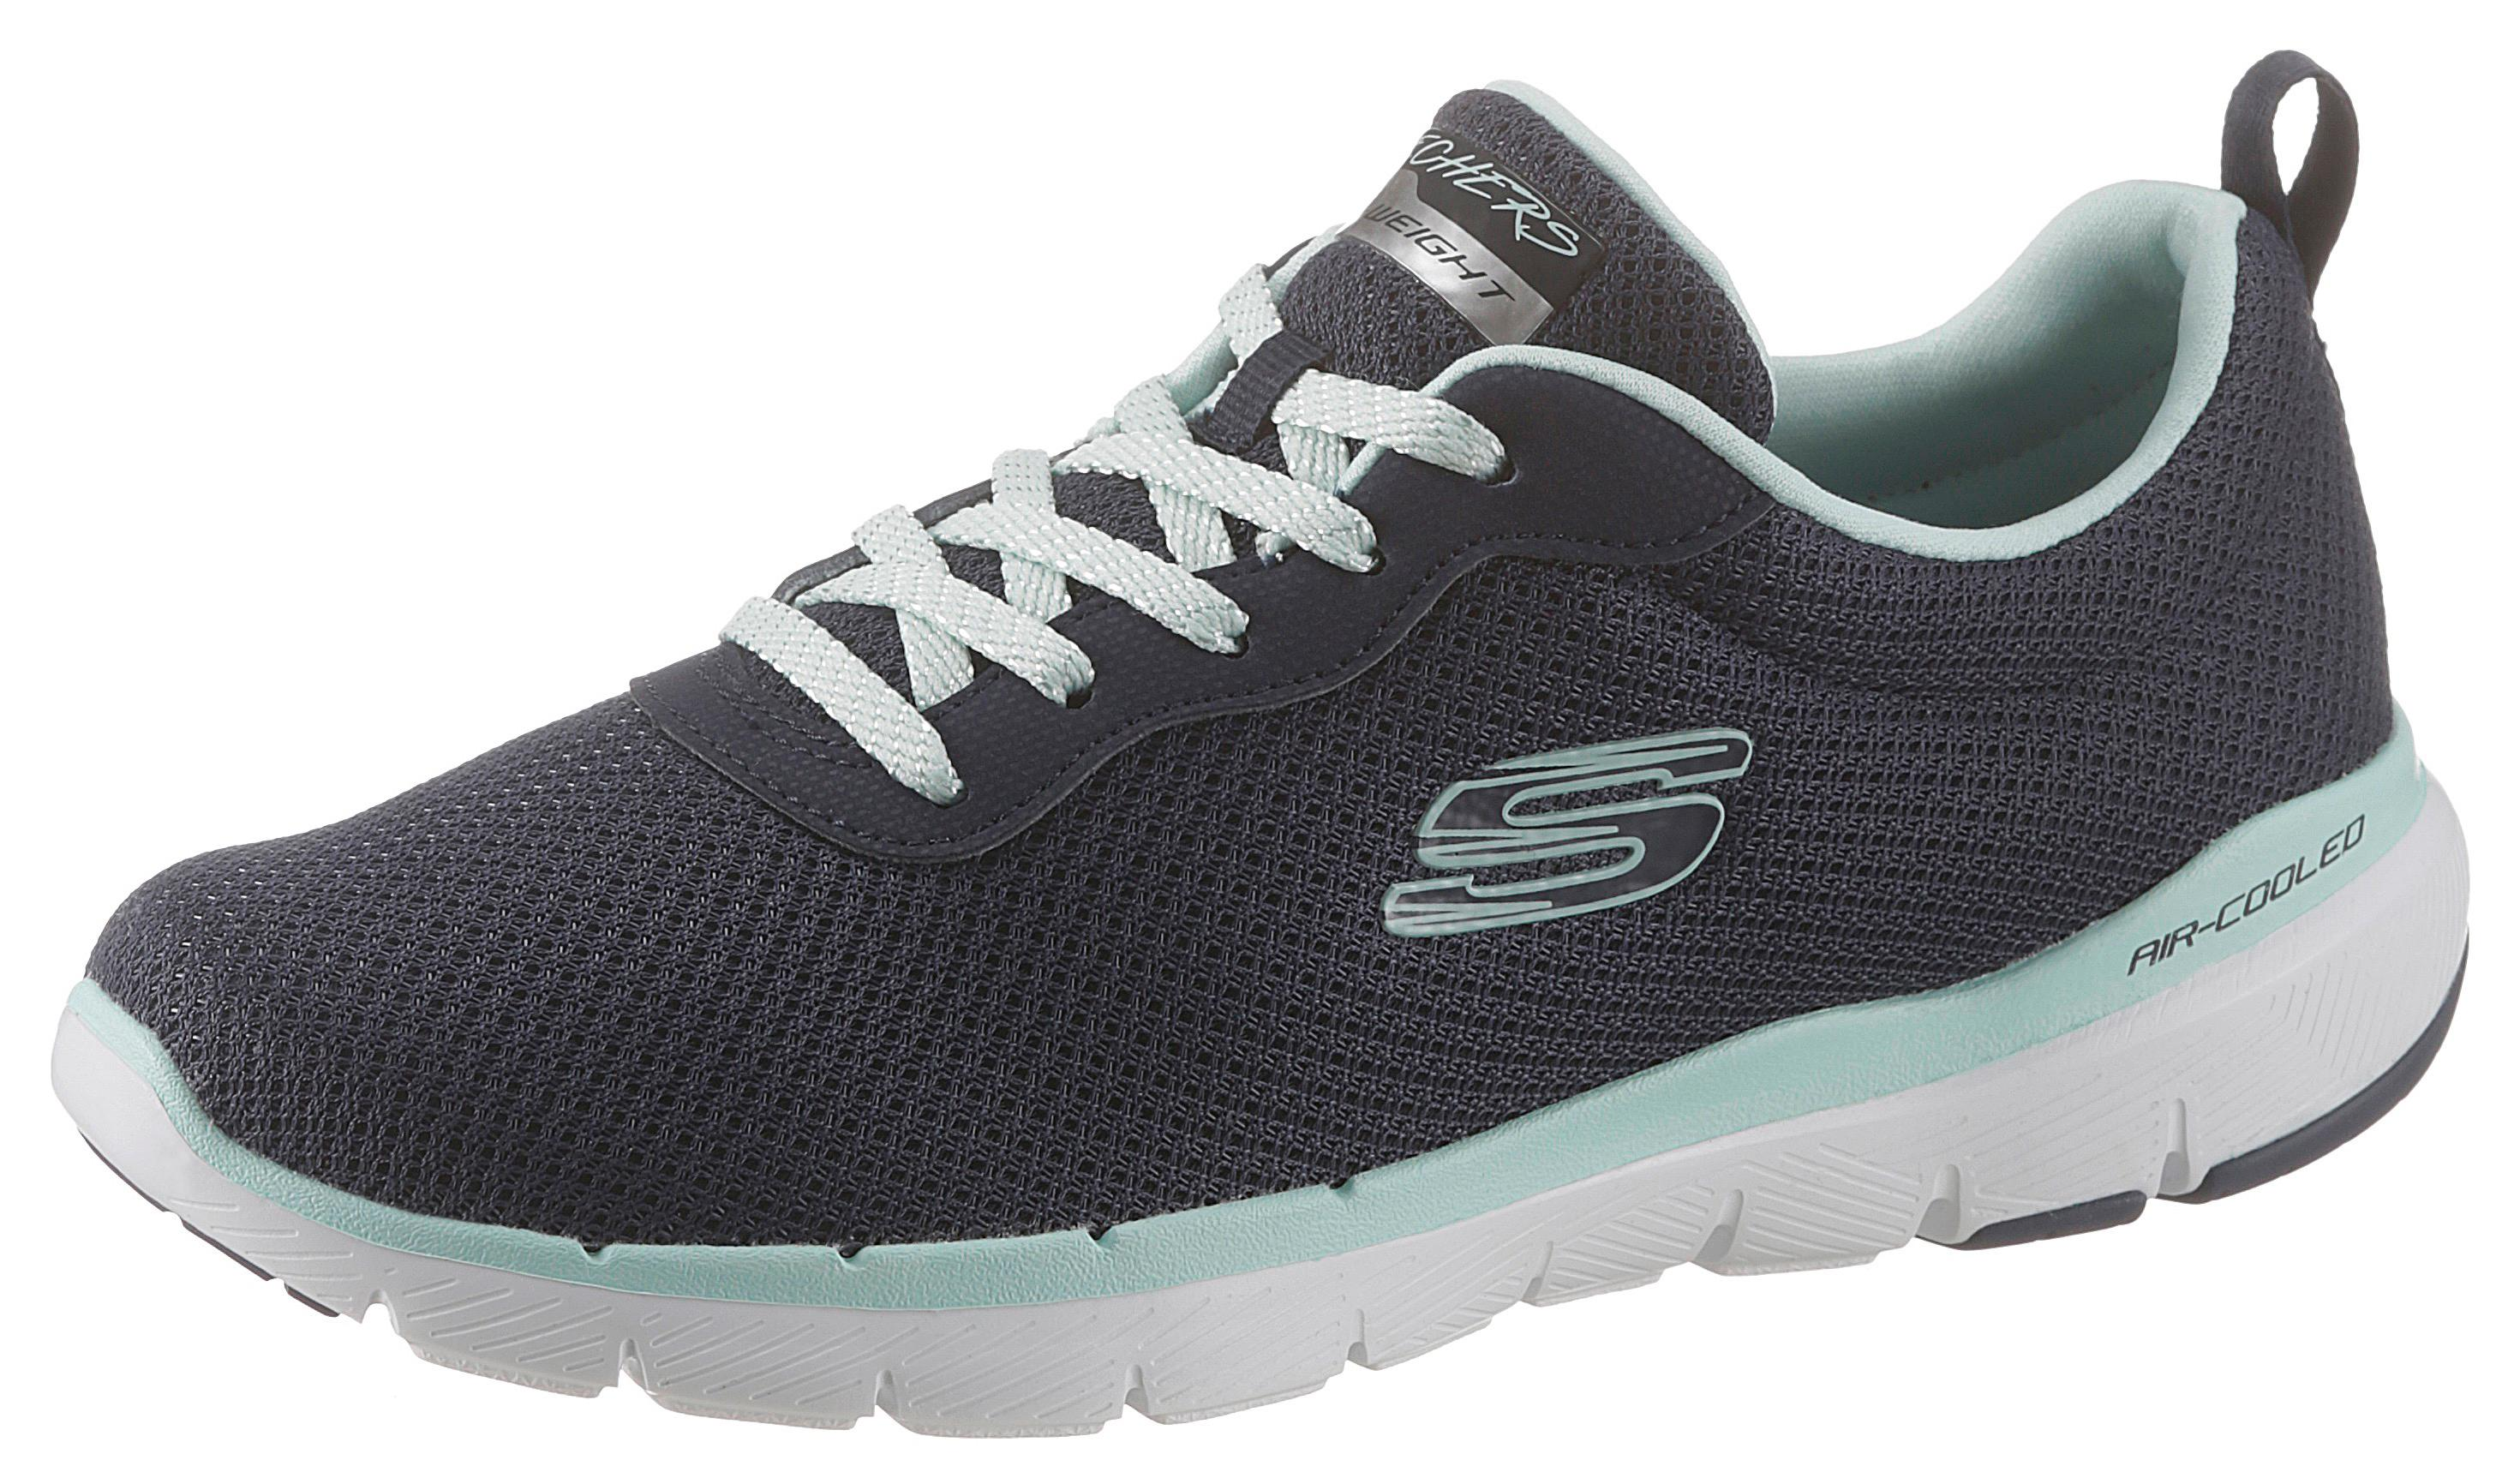 0cb83b2a02c595 Skechers Sneaker »Flex Appeal 3.0 - First Insight« bestellen | BAUR